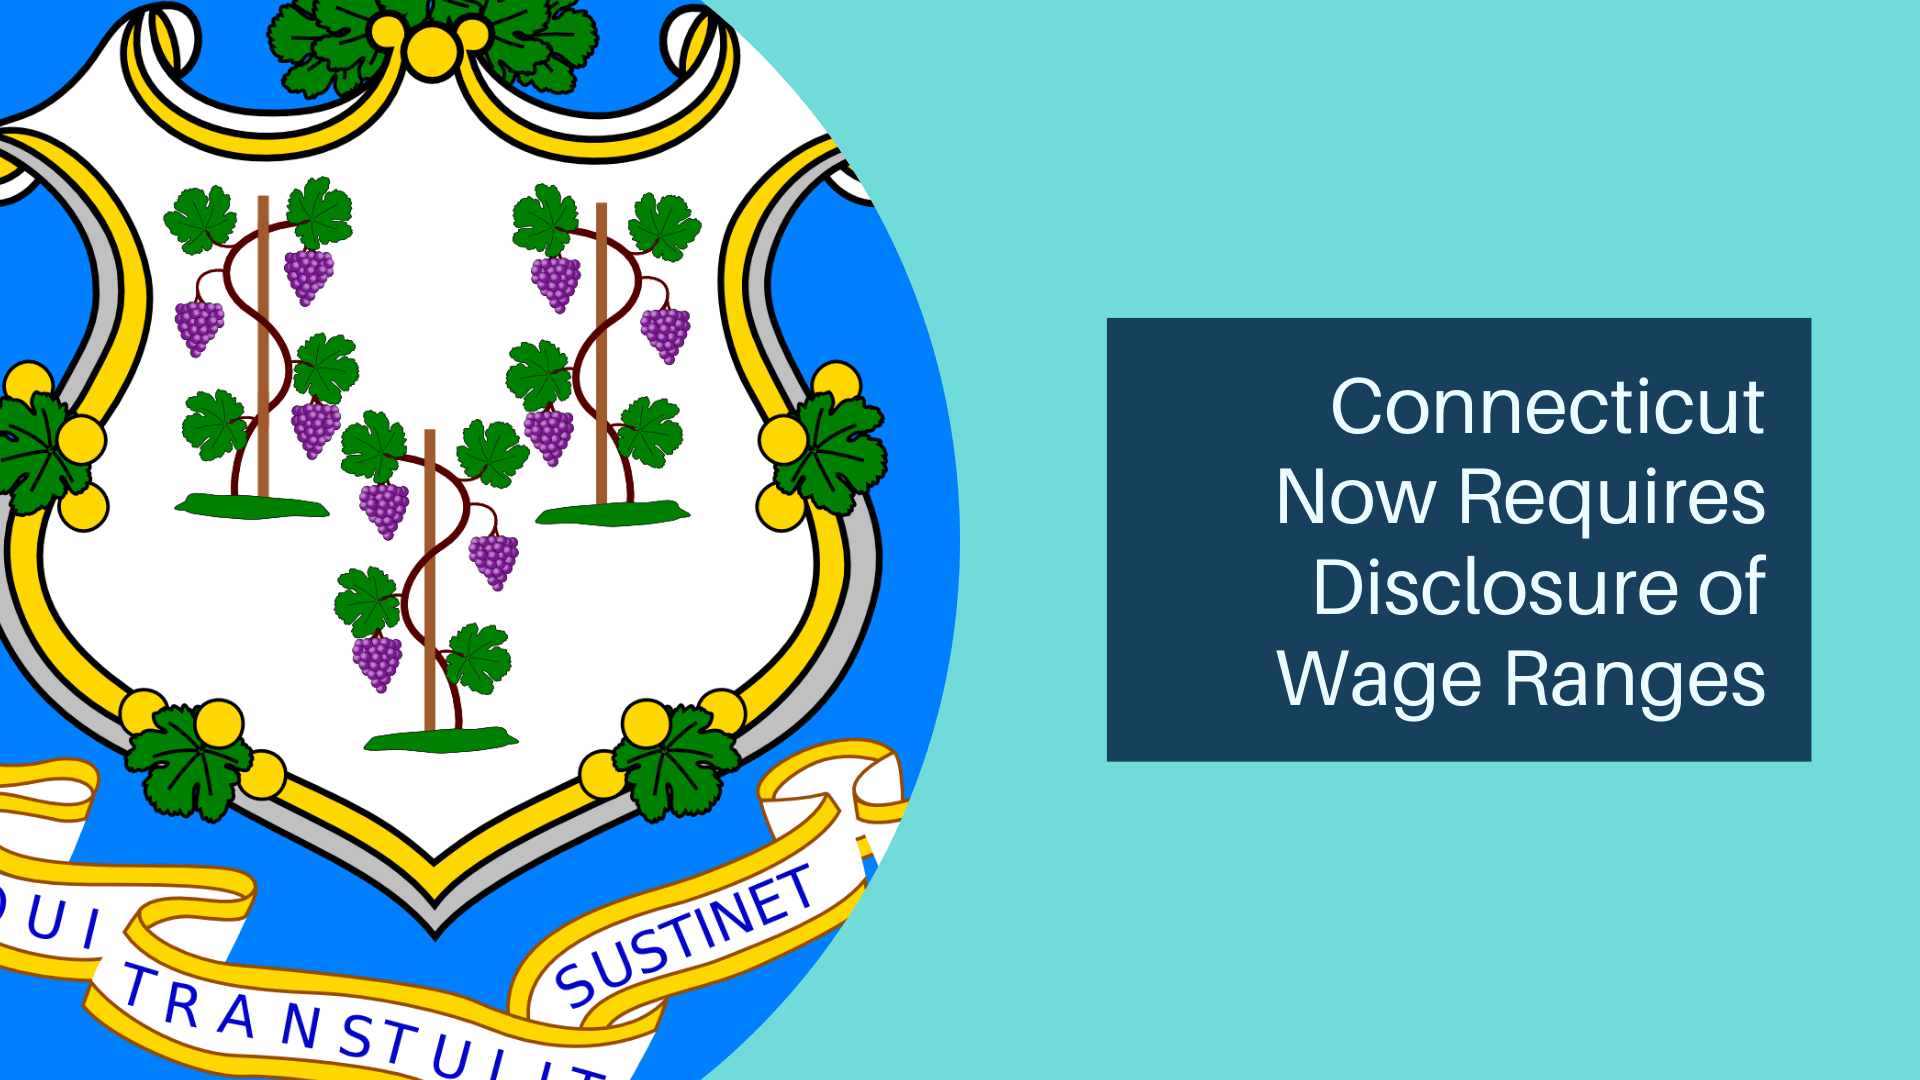 Connecticut Now Requires Disclosure of Wage Ranges ~ Symphony Employer Solutions Keeps YOUR Business Compliant